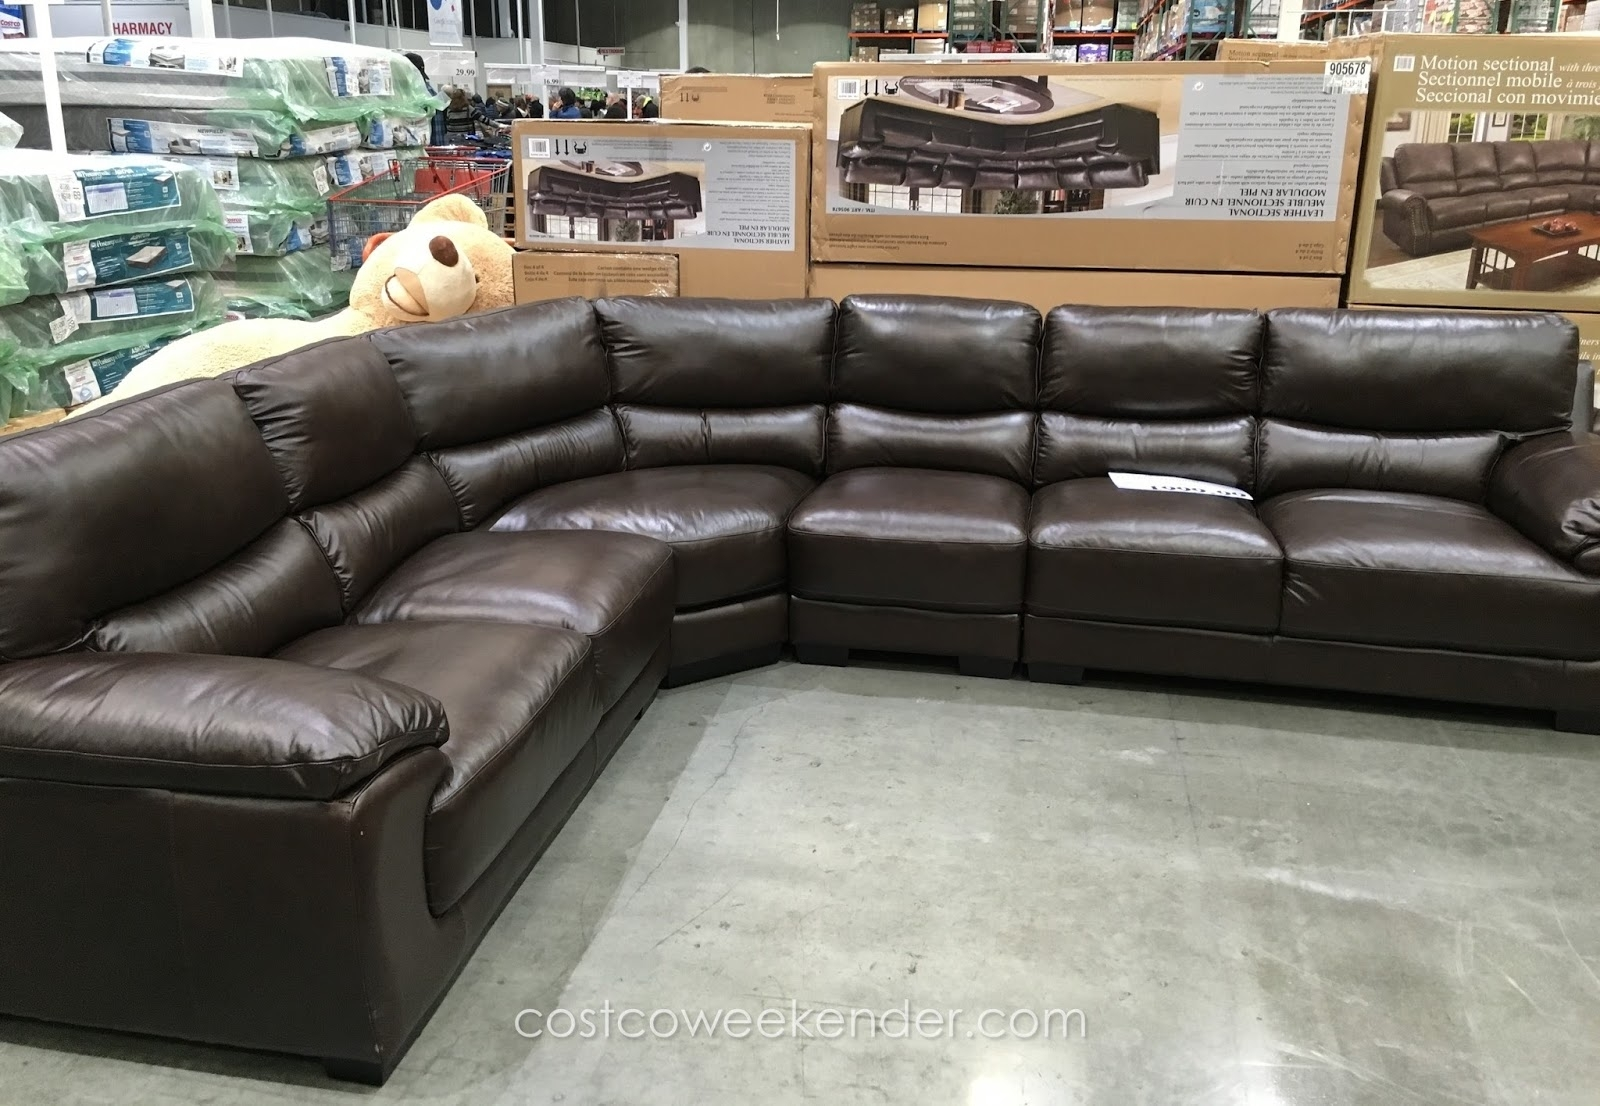 Marks & Cohen Colton Leather Sectional | Costco Weekender For Cohen Down 2 Piece Sectionals (Image 19 of 25)